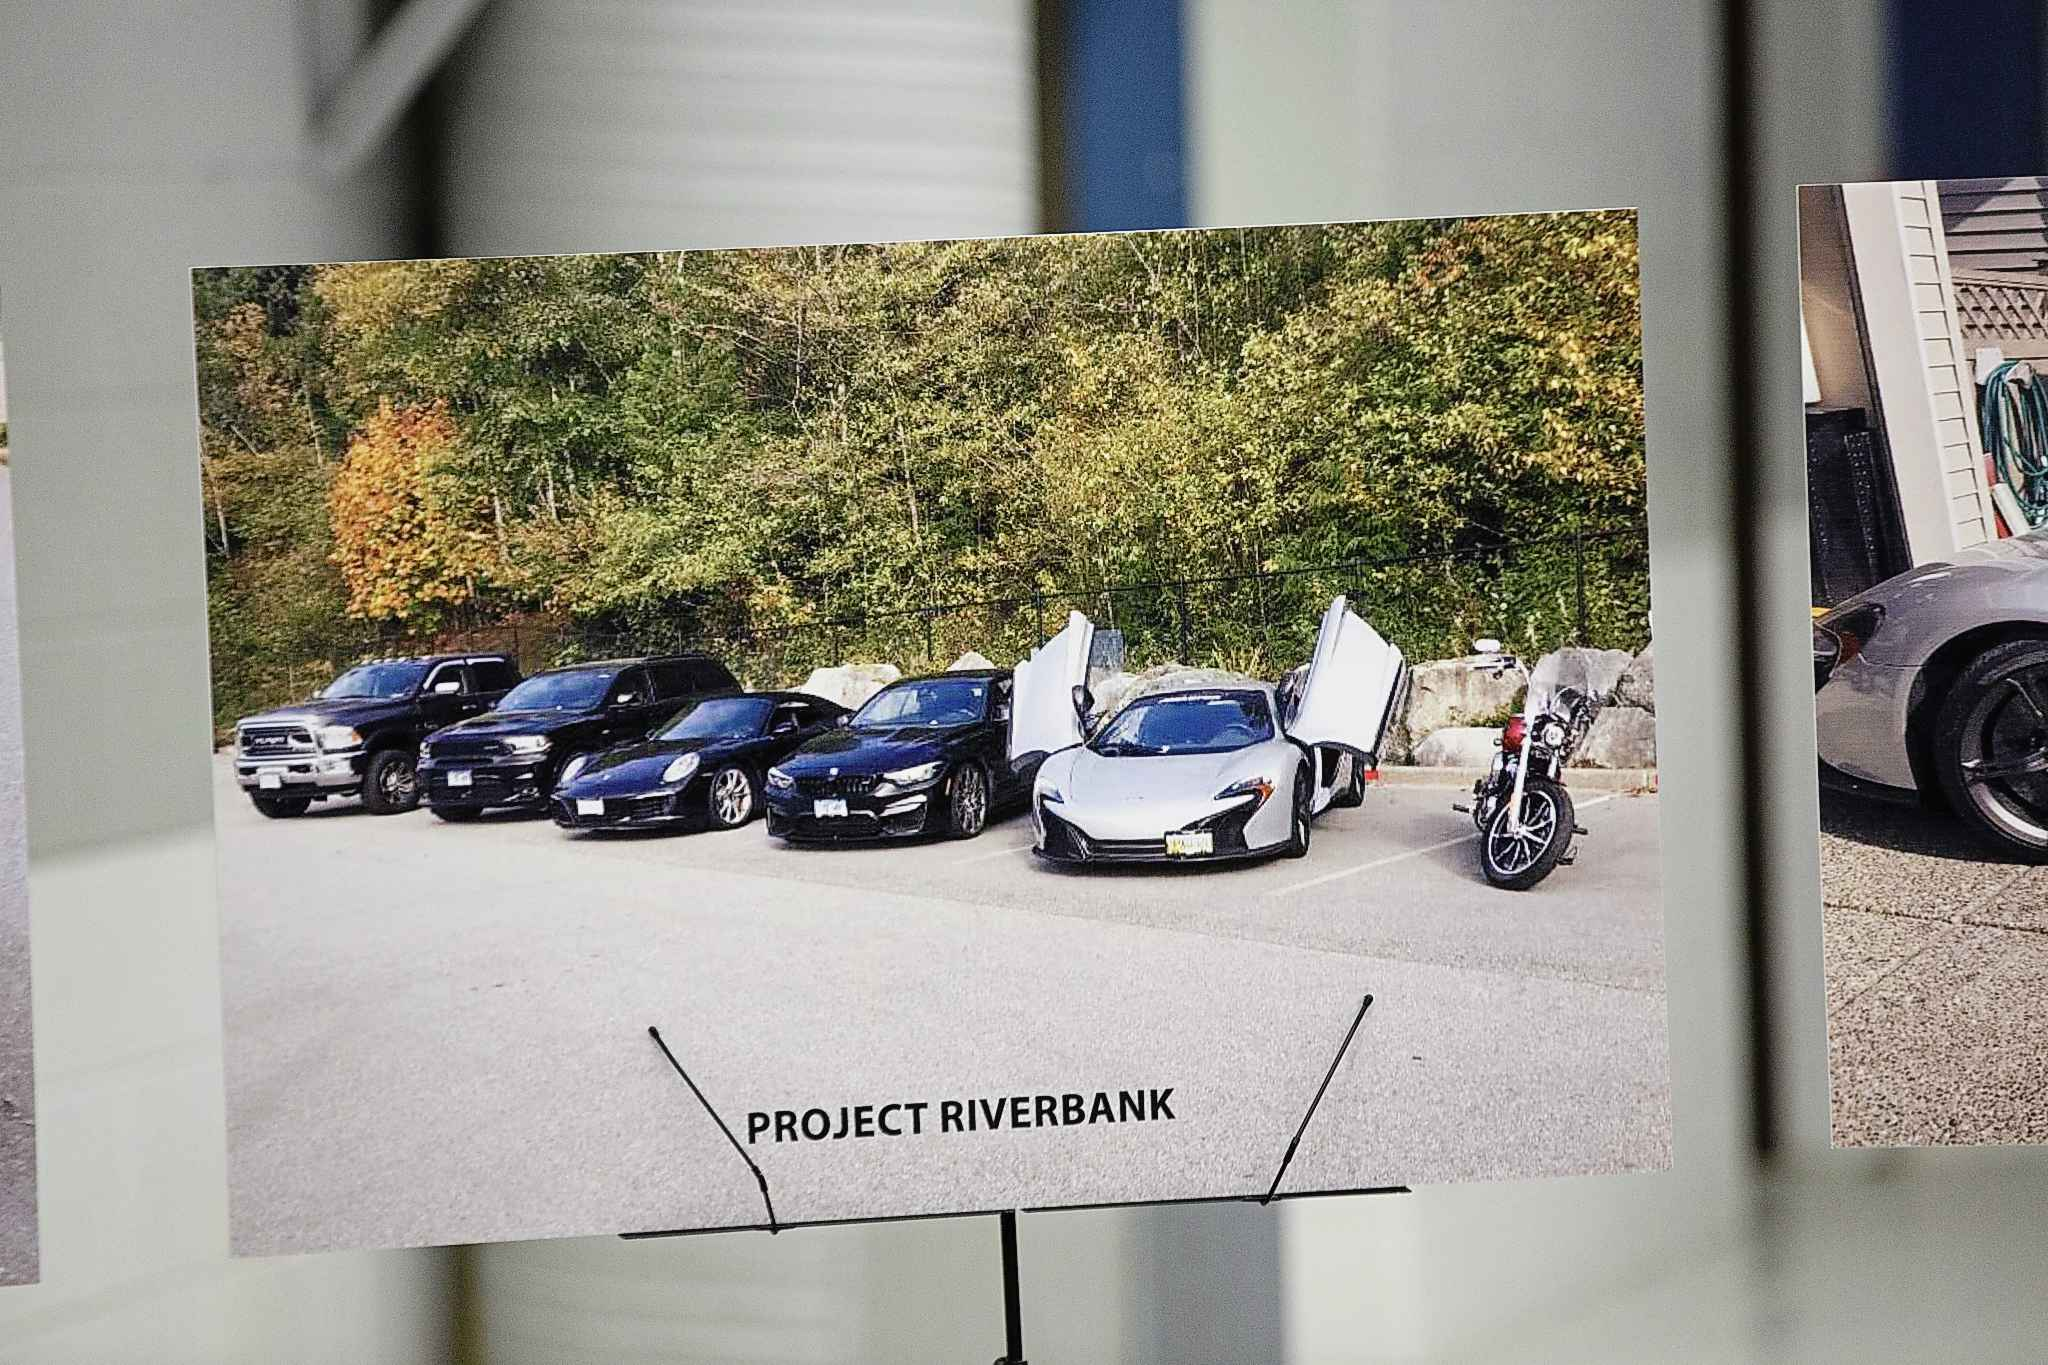 Photo of some of the vehicles on display at the MPI depot that were seized during Project Riverbank.